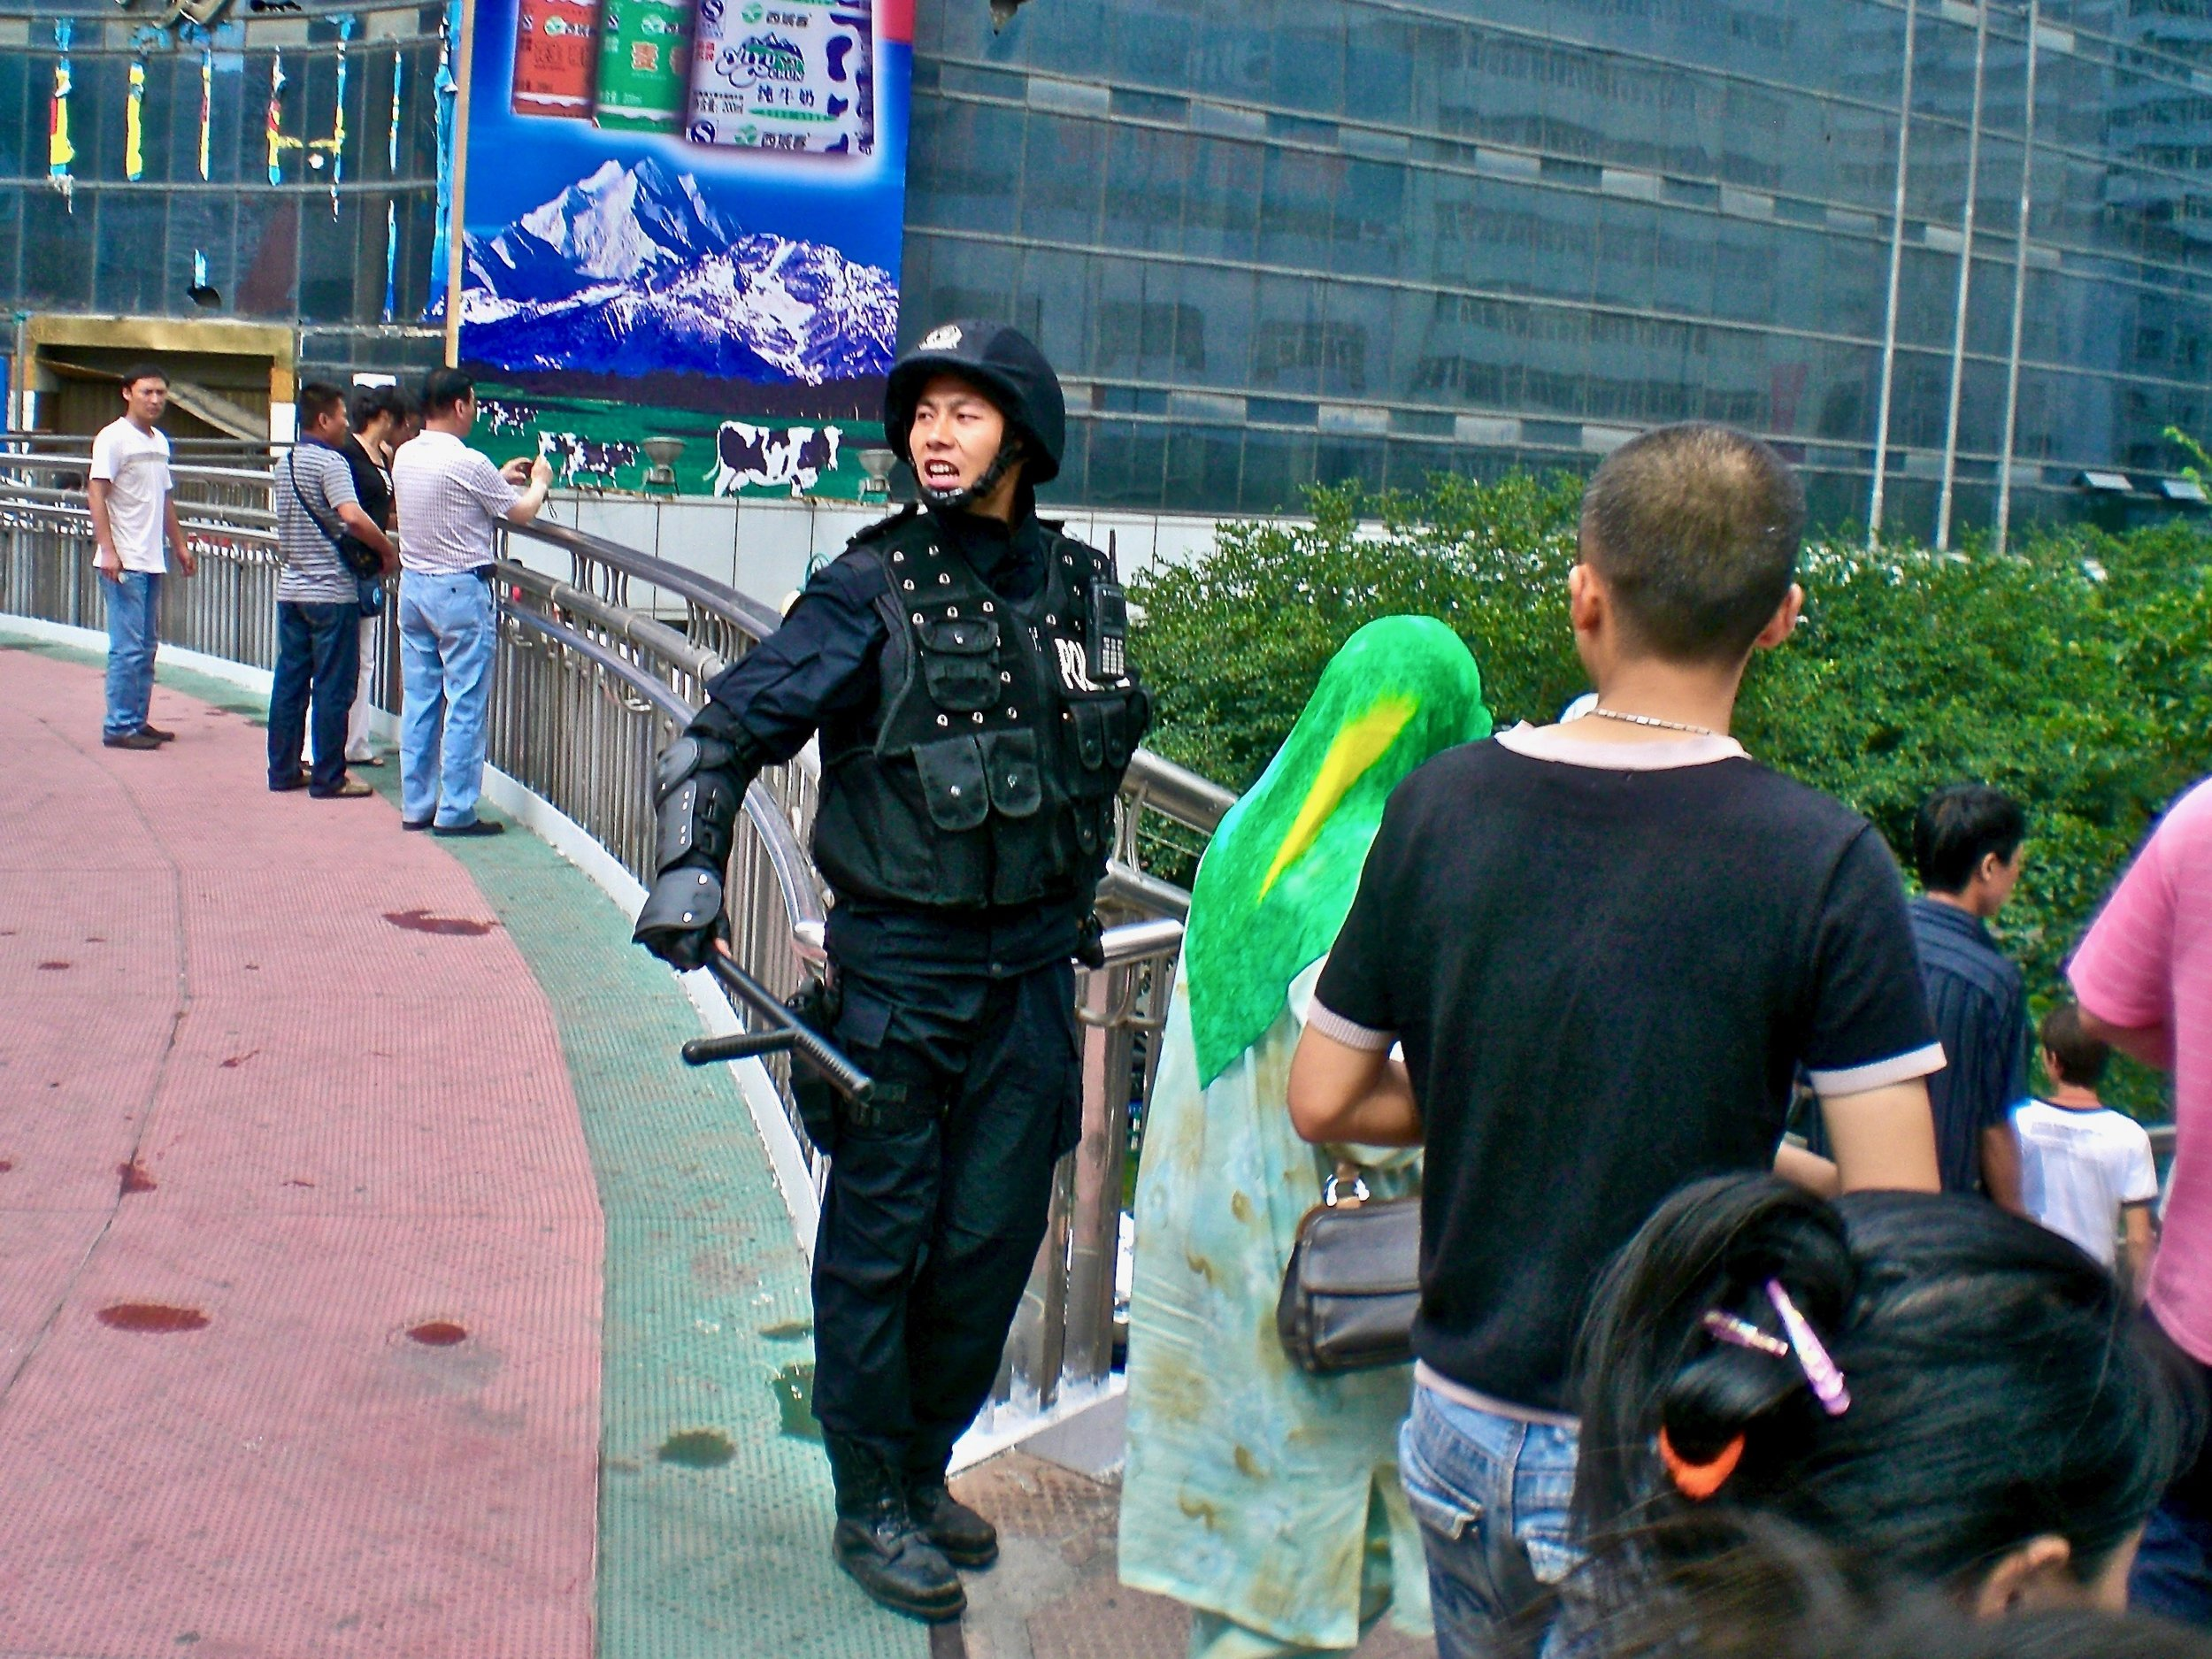 Urumqi, capital of Xinjiang, on high alert after deadly ethnic riots in 2009. (C) Remko Tanis